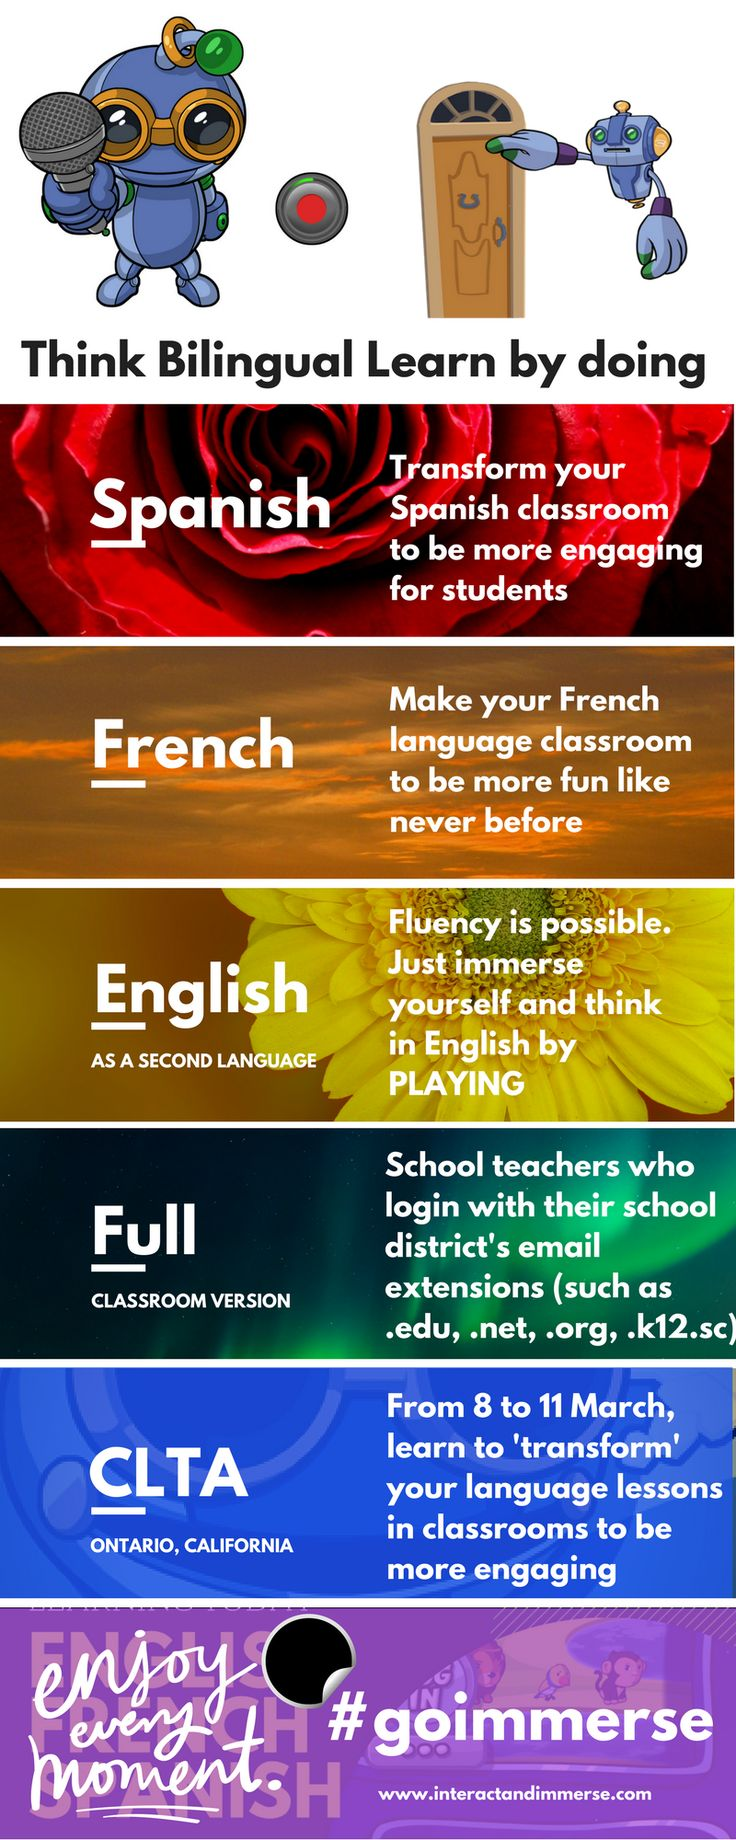 Are you ready to change the way your students learn languages? Immersion is the answer-- Think Bilingual is the method. #teacher #english #french #spanish #esl #duallanguage #clta2018 #edtech #language